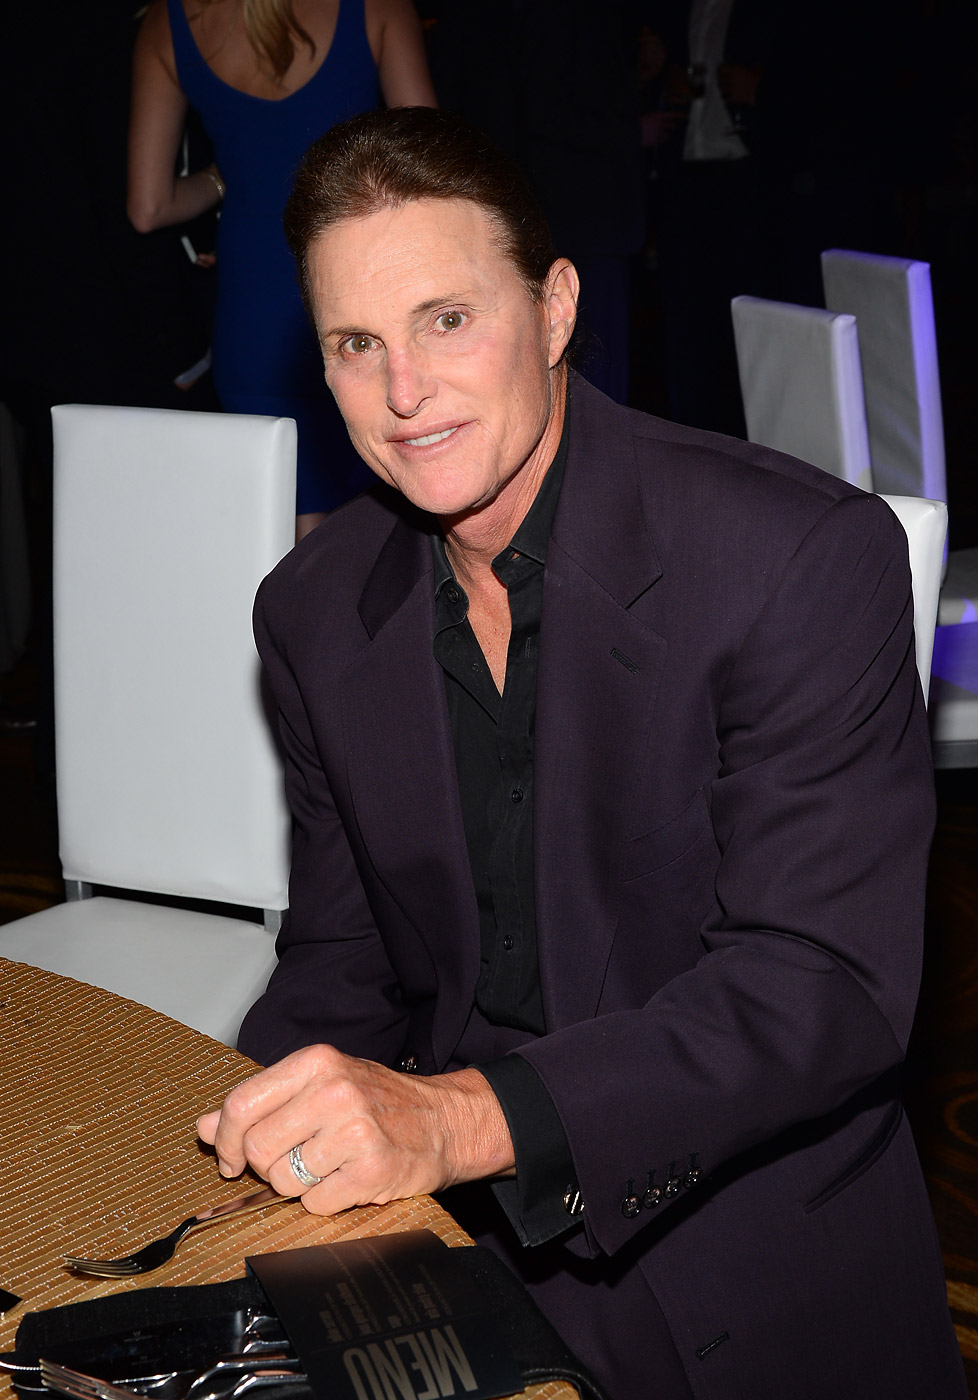 Bruce Jenner attends the 13th annual Michael Jordan Celebrity Invitational gala at the ARIA Resort & Casino at CityCenter on April 4, 2014 in Las Vegas, NV.